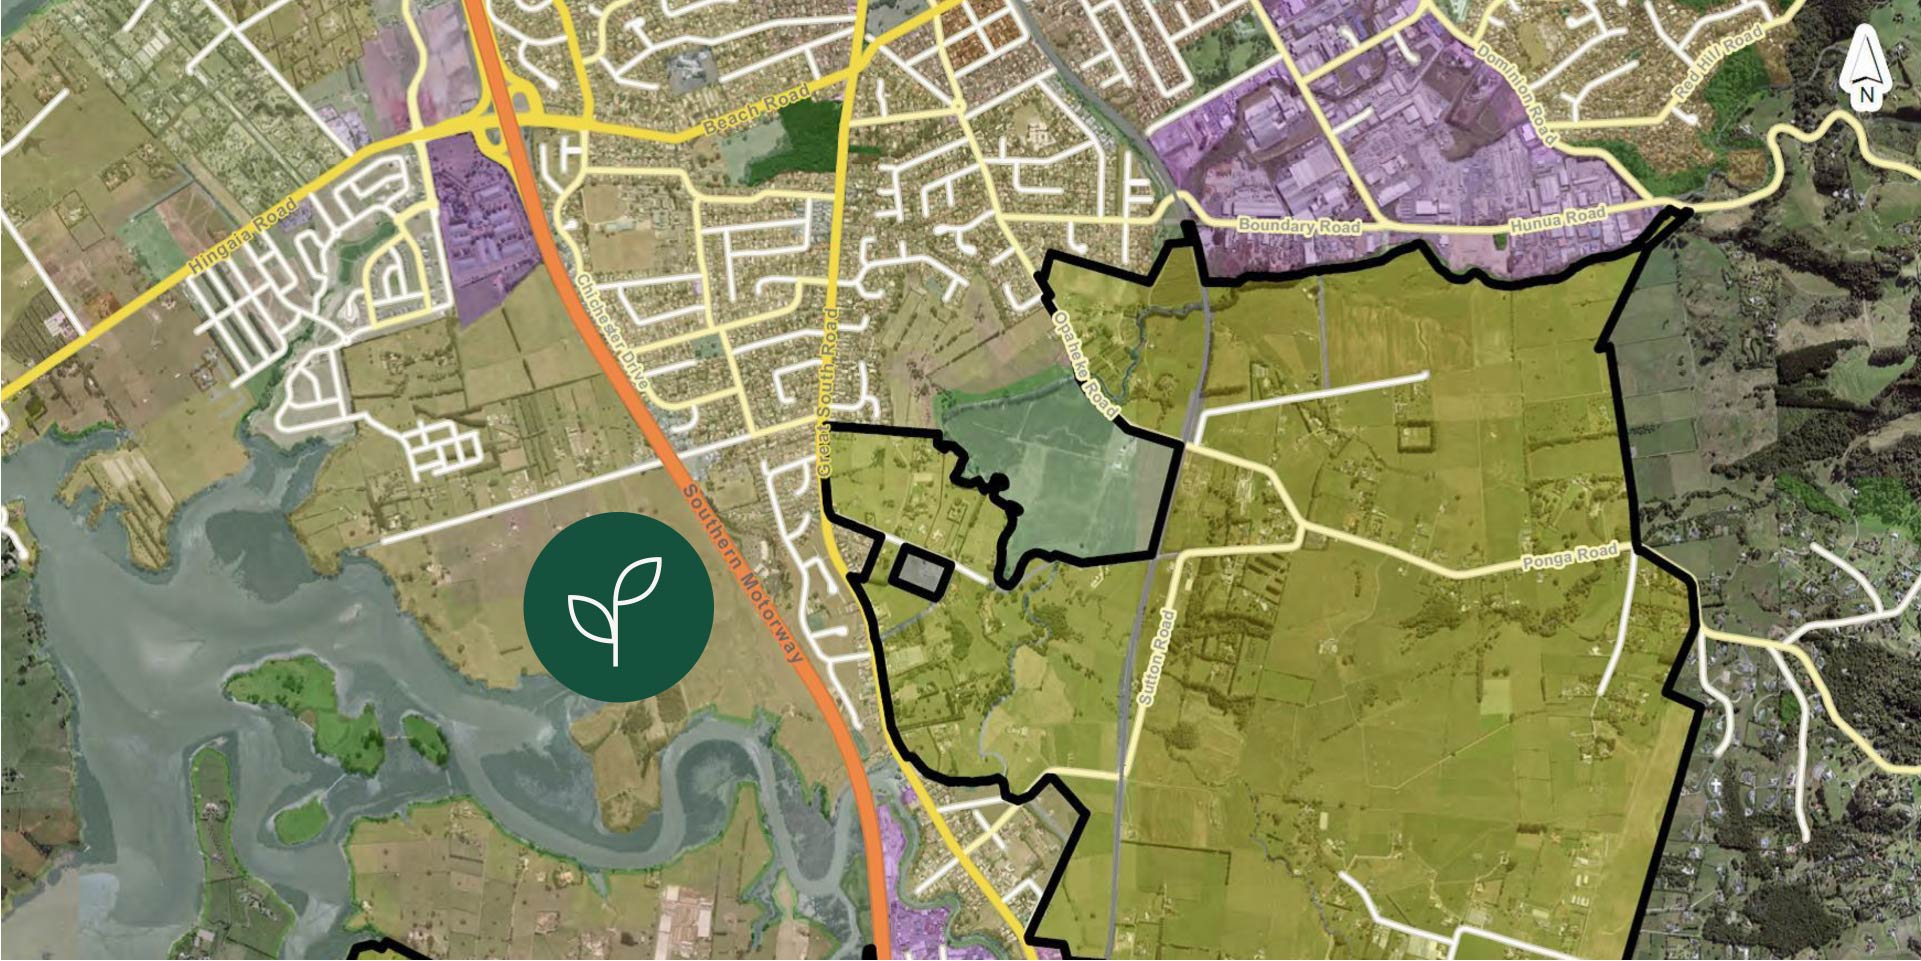 Urban growth signalled in Southern Auckland